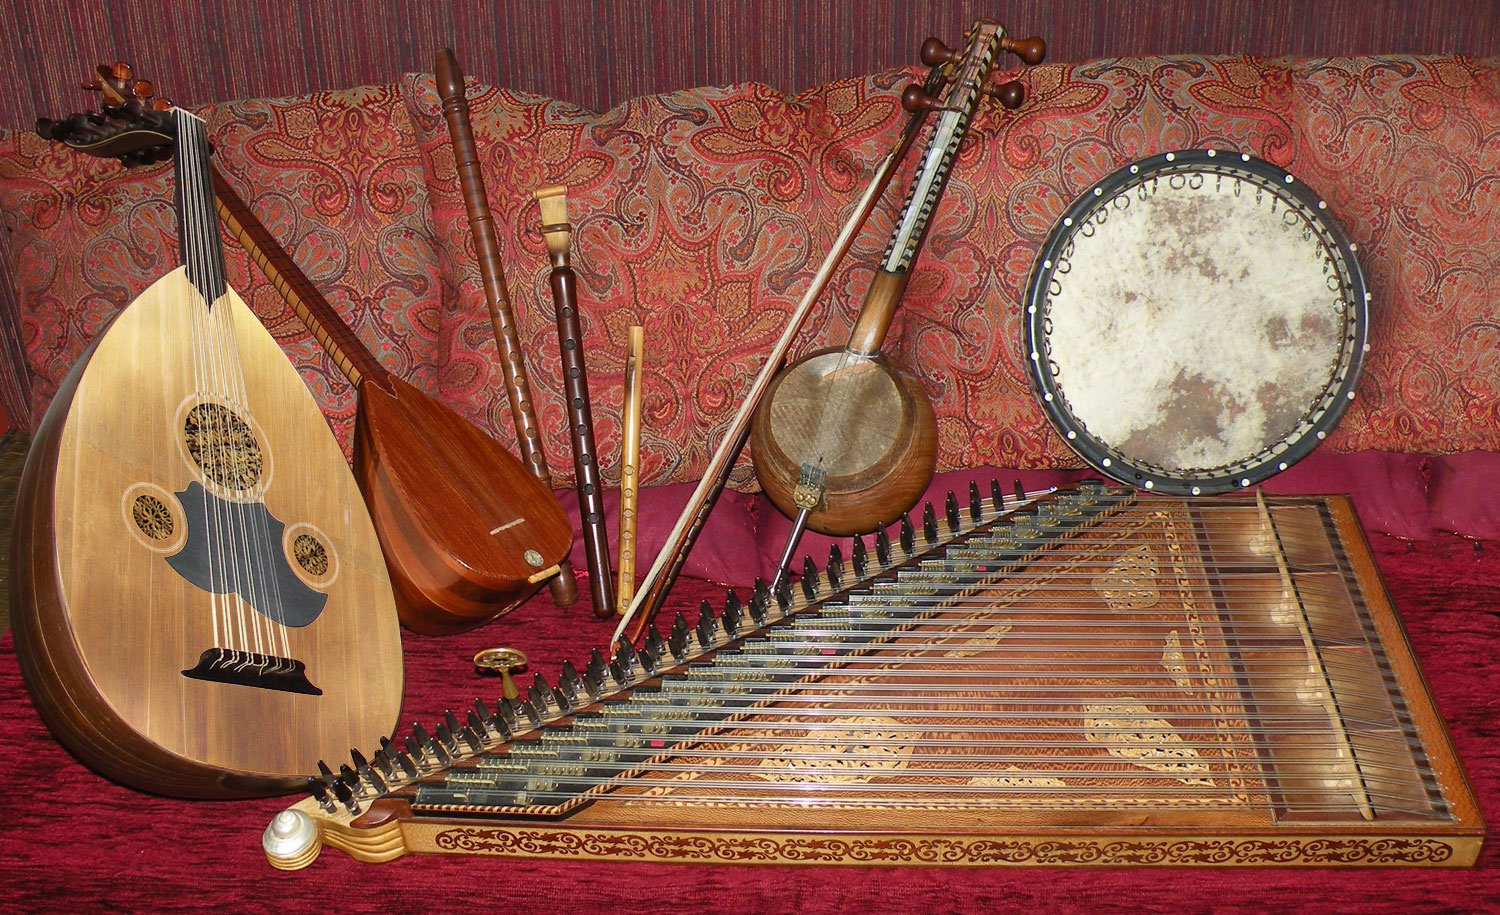 Les instruments traditionnels